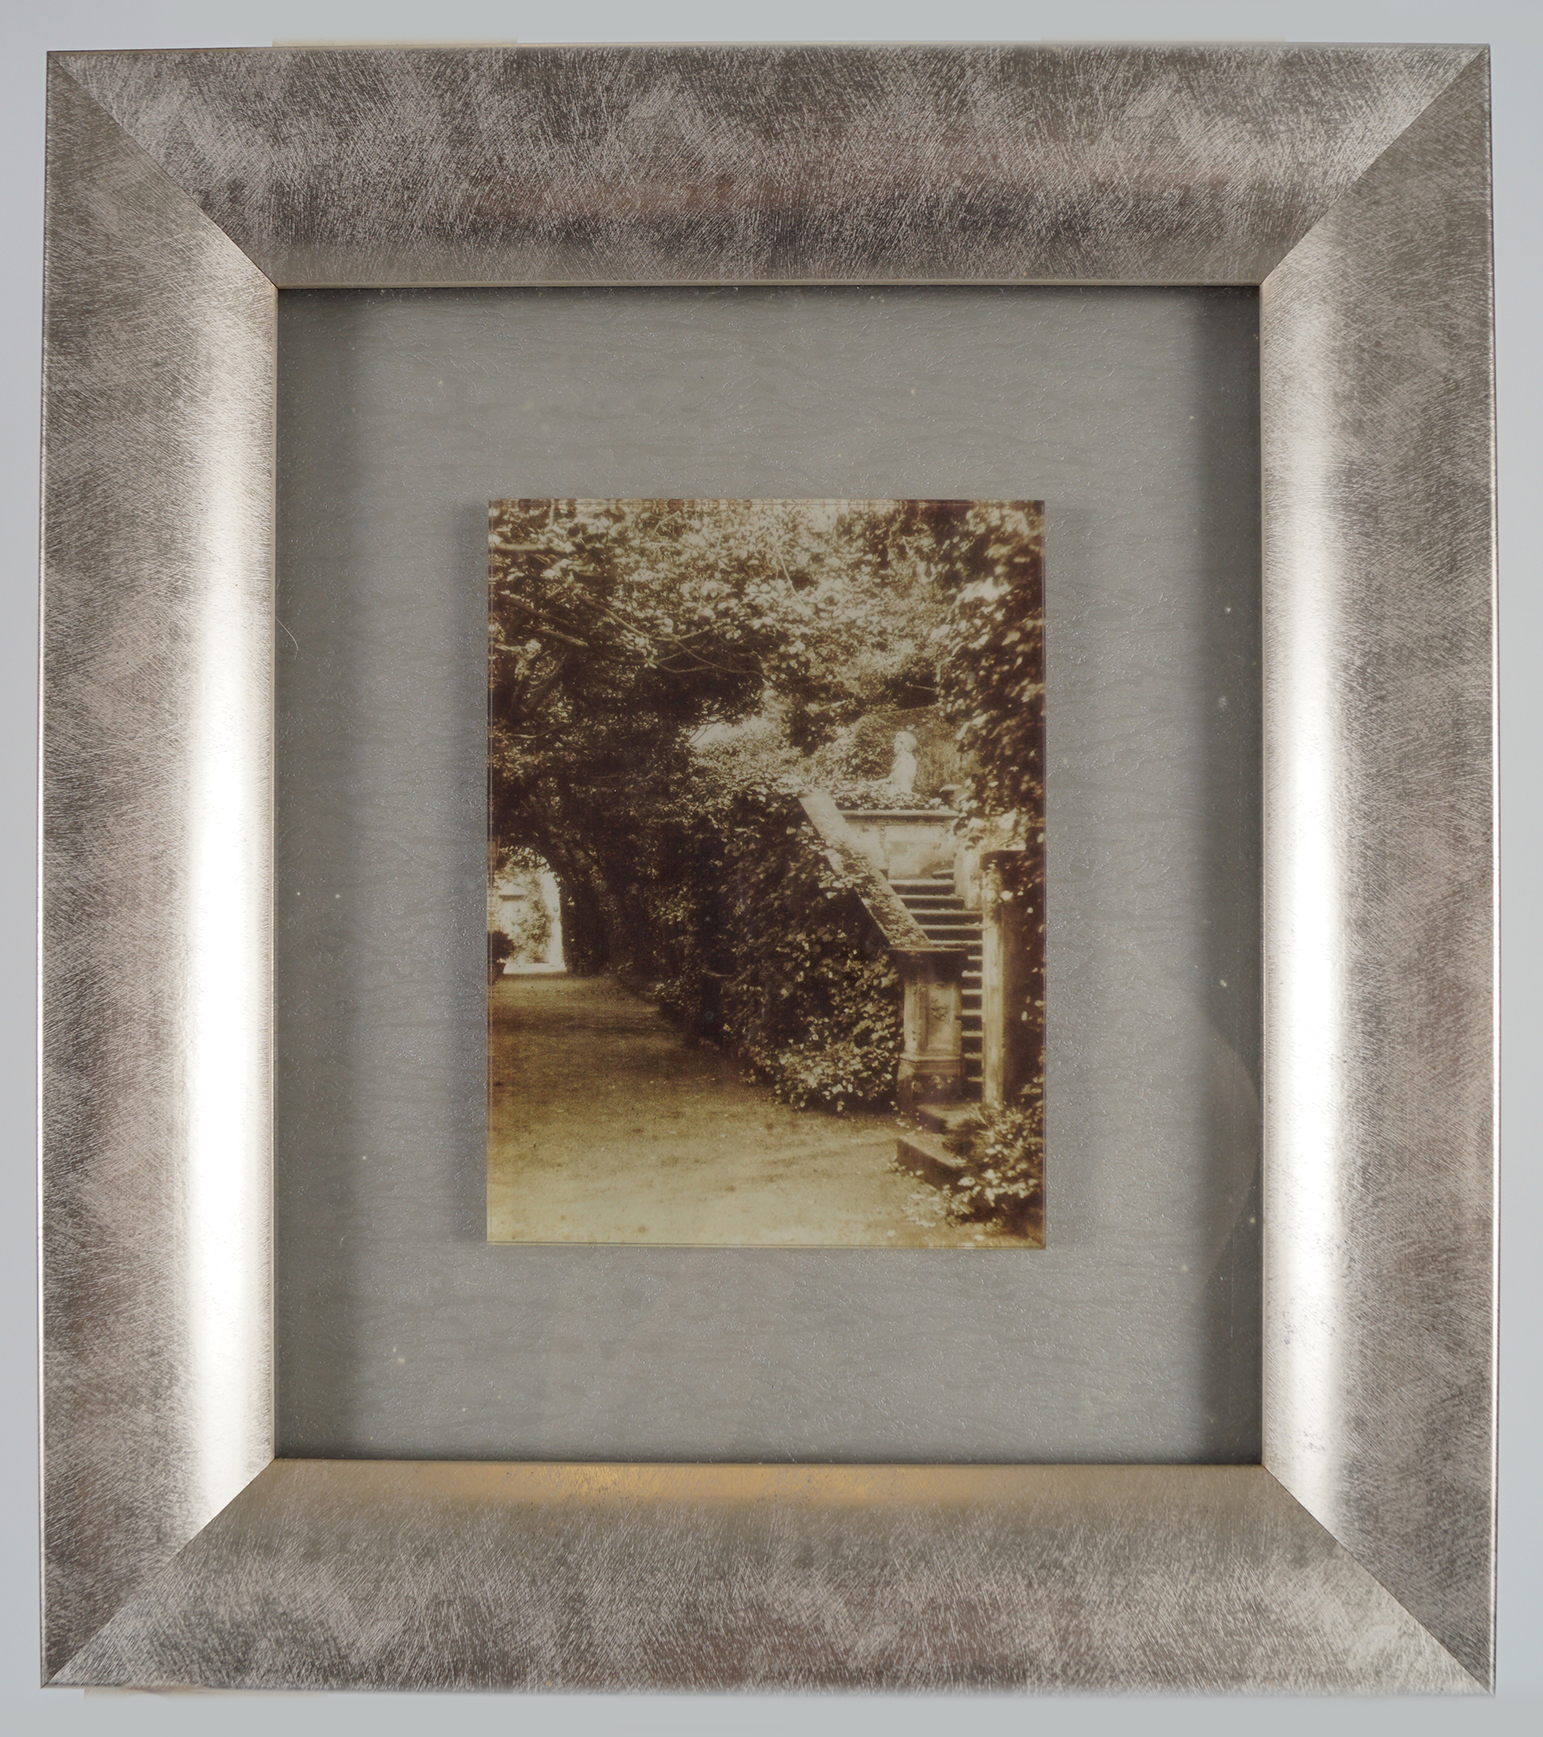 PAIR OF MOUNTED PHOTOGRAPHS - Image 3 of 4